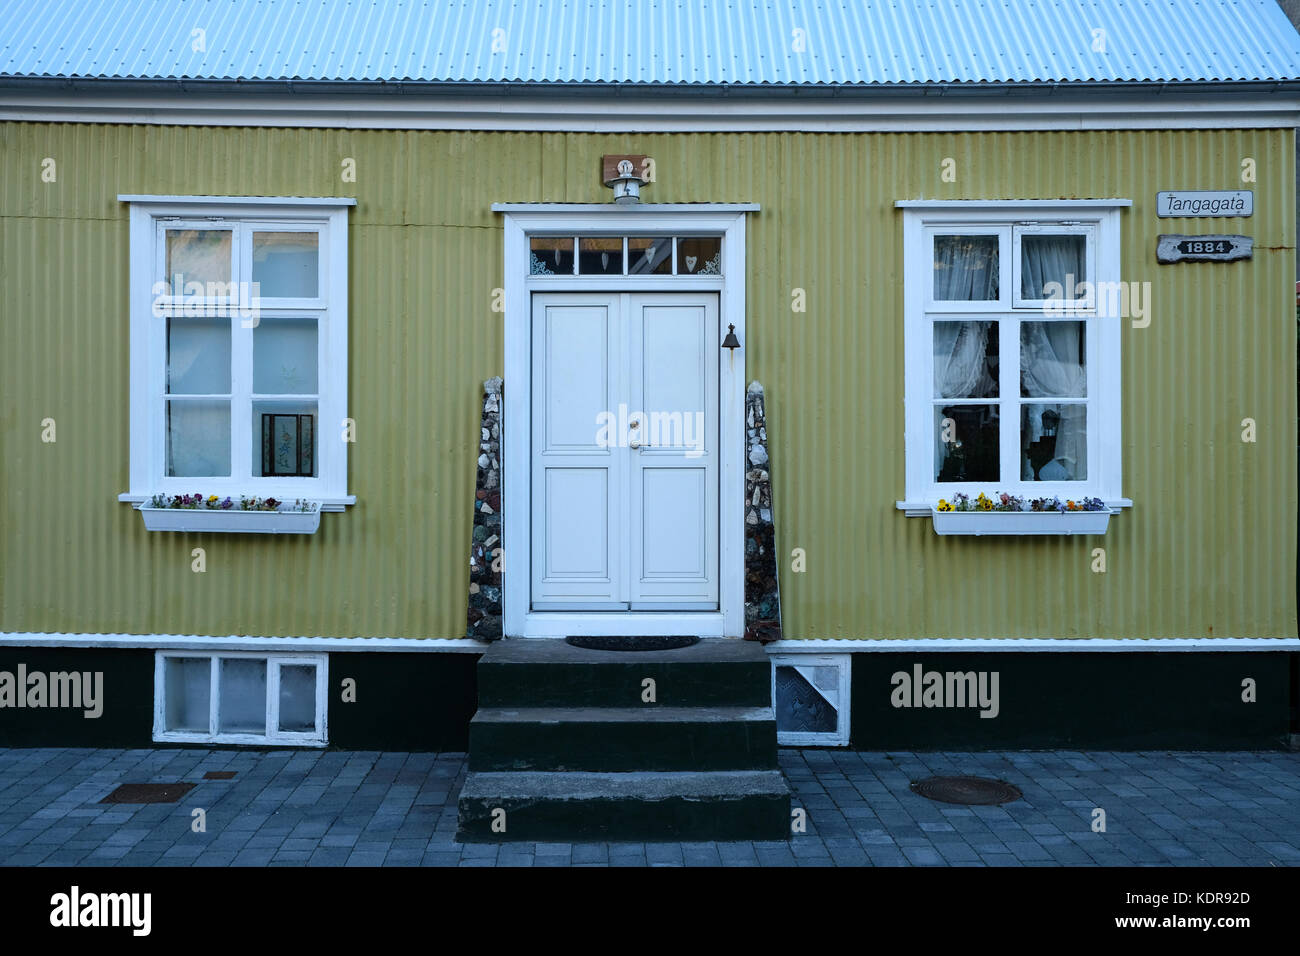 Traditional Icelandic wooden yellow house front in remote Westfjords town of Isafjordur Iceland - Stock Image